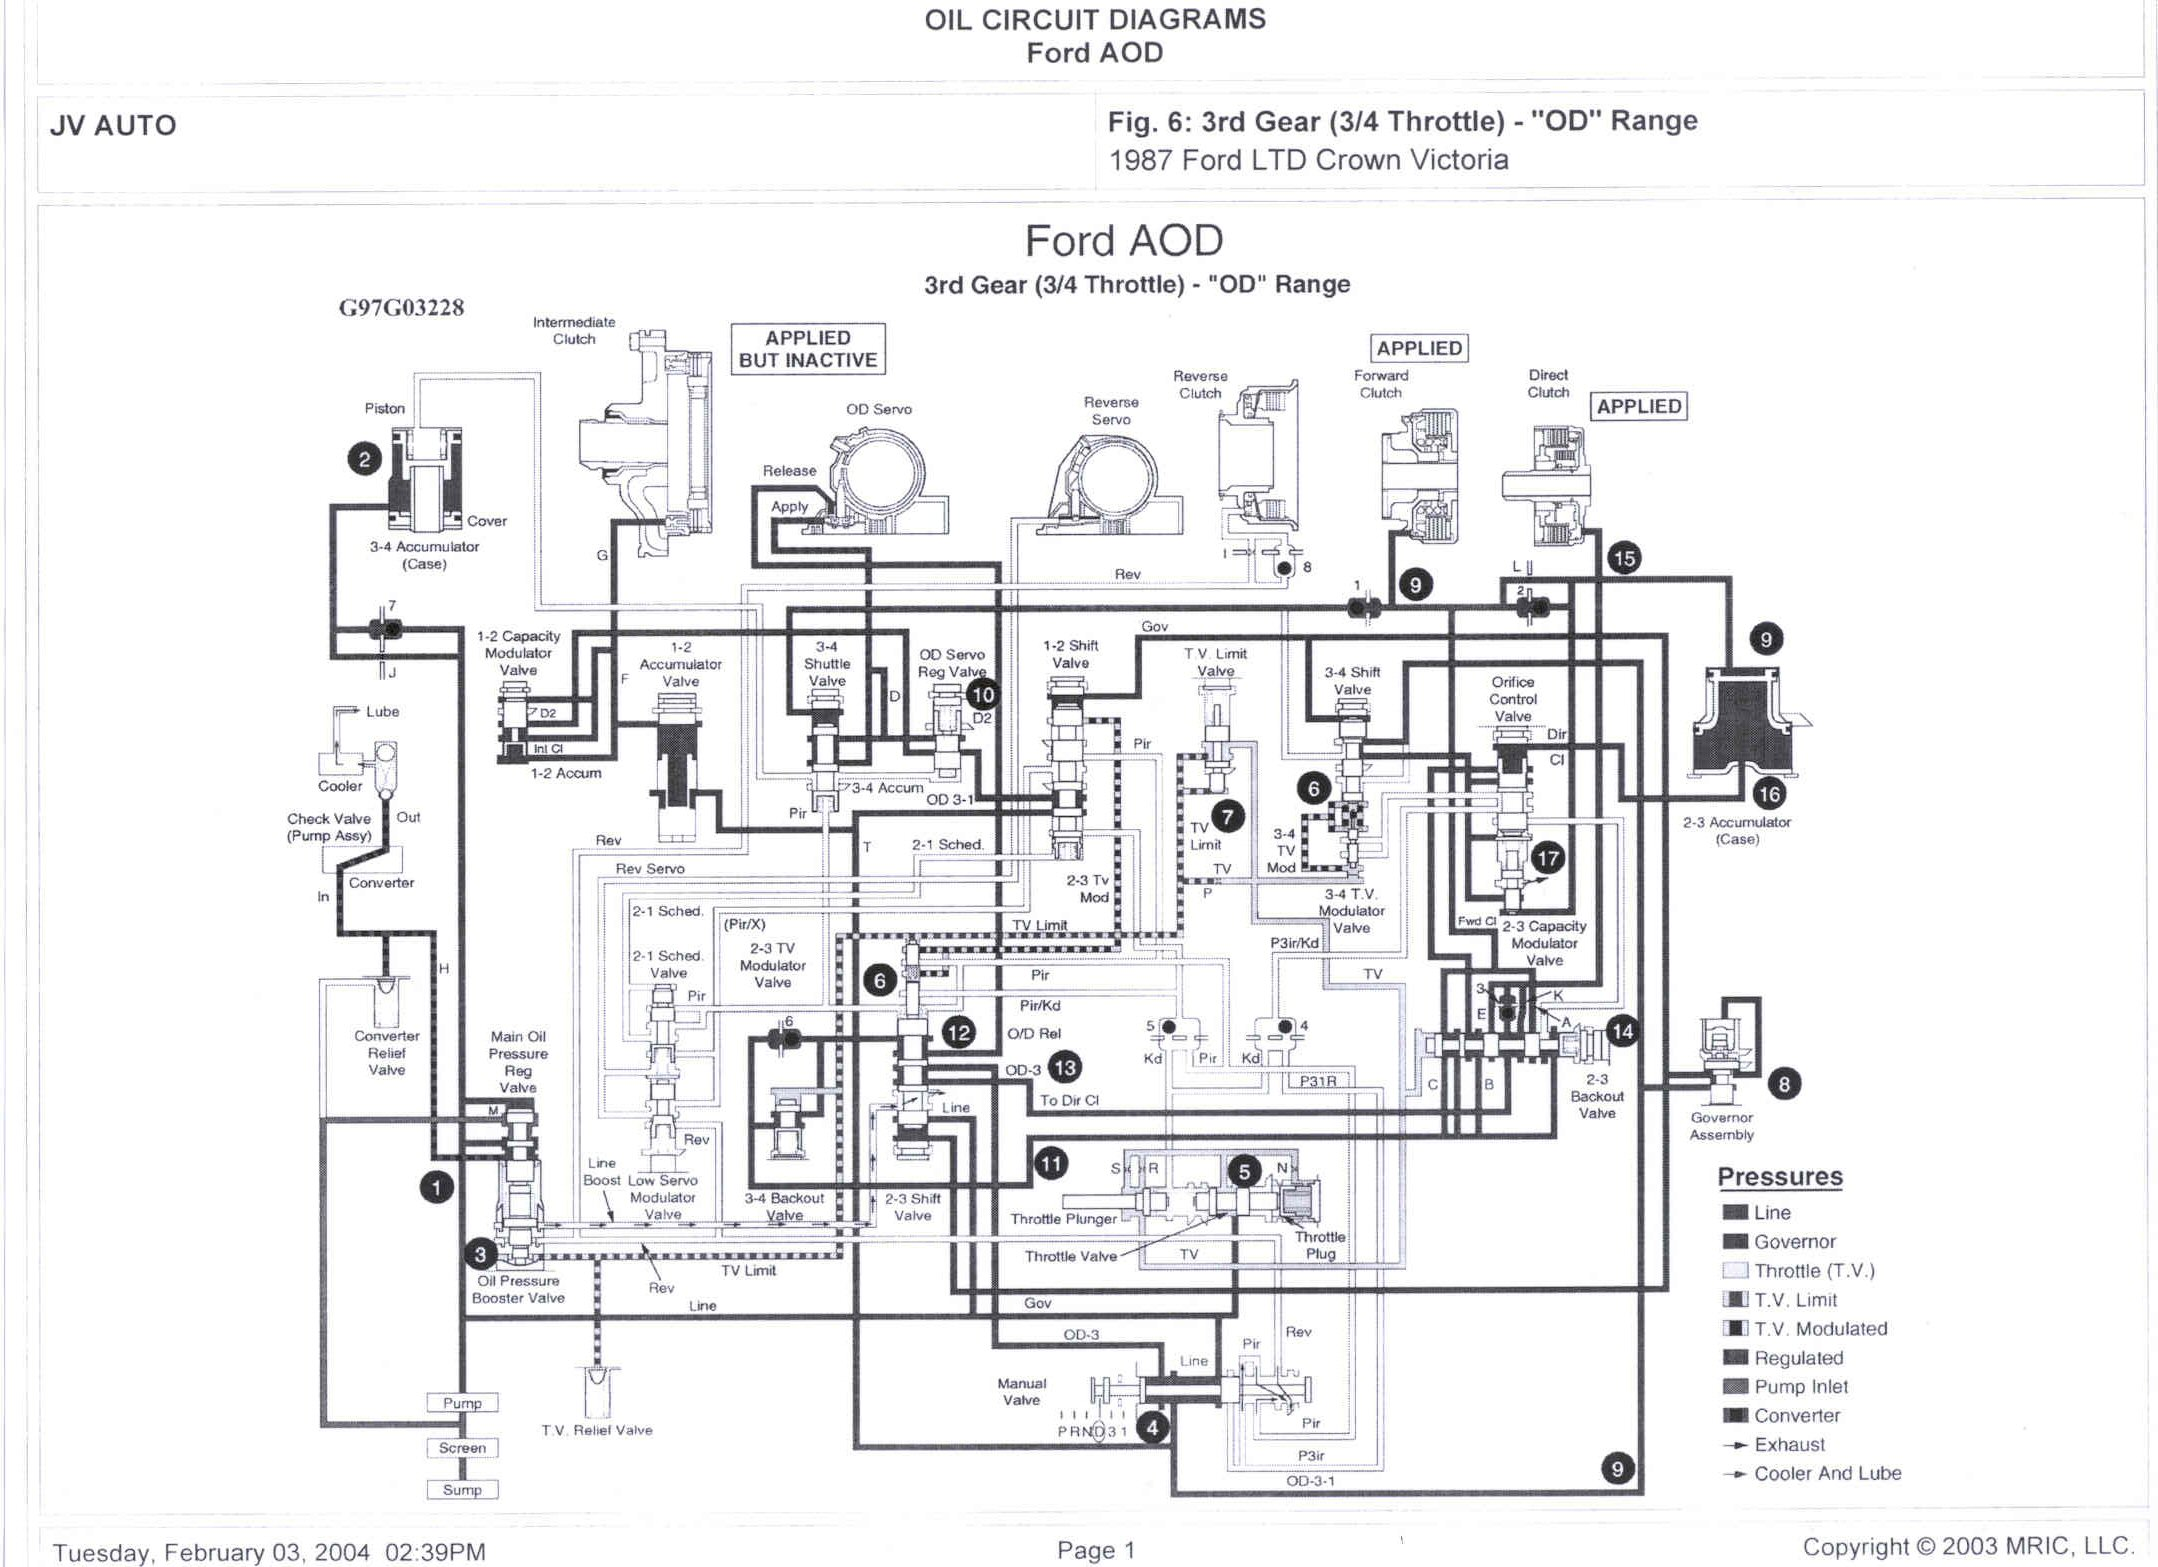 1985 Ford Aod Transmission Wiring Diagram Diagrams Crown Victoria Ltd Picture Safety Switch